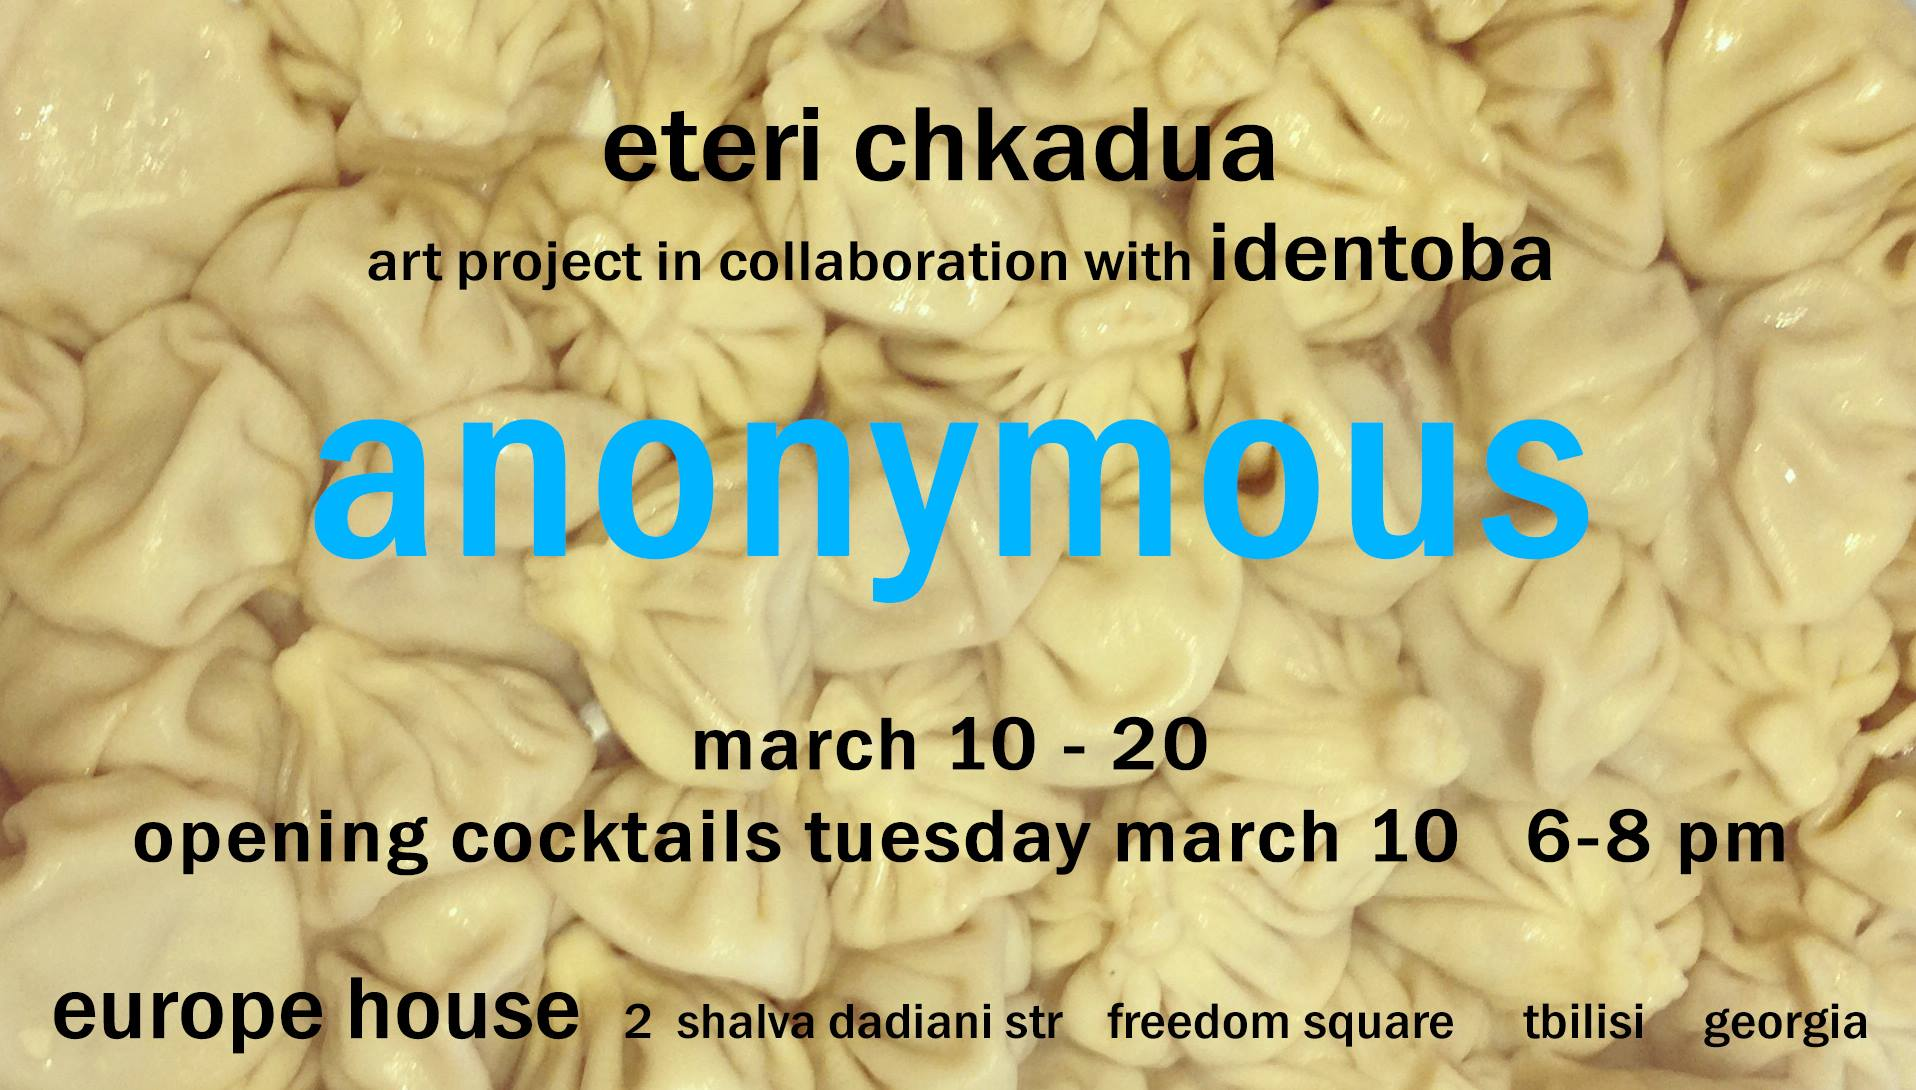 Anonymous opens on March 10, an exhibition by Eteri Chkadua & Identoba